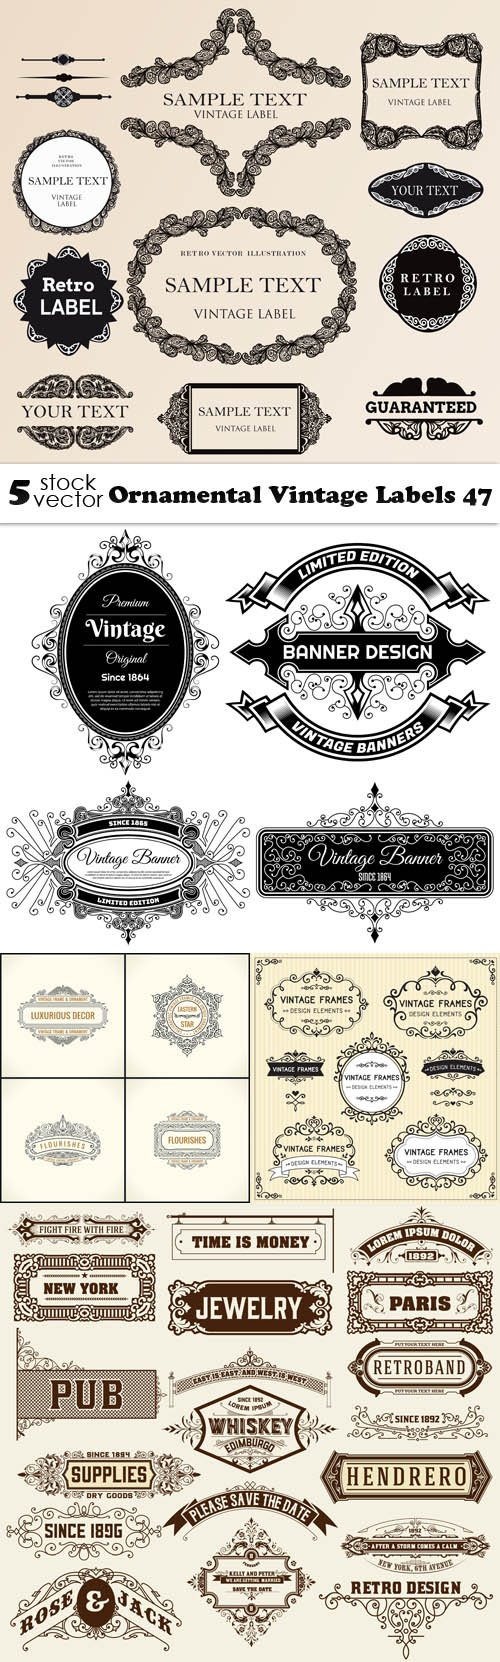 Vectors - Ornamental Vintage Labels 47